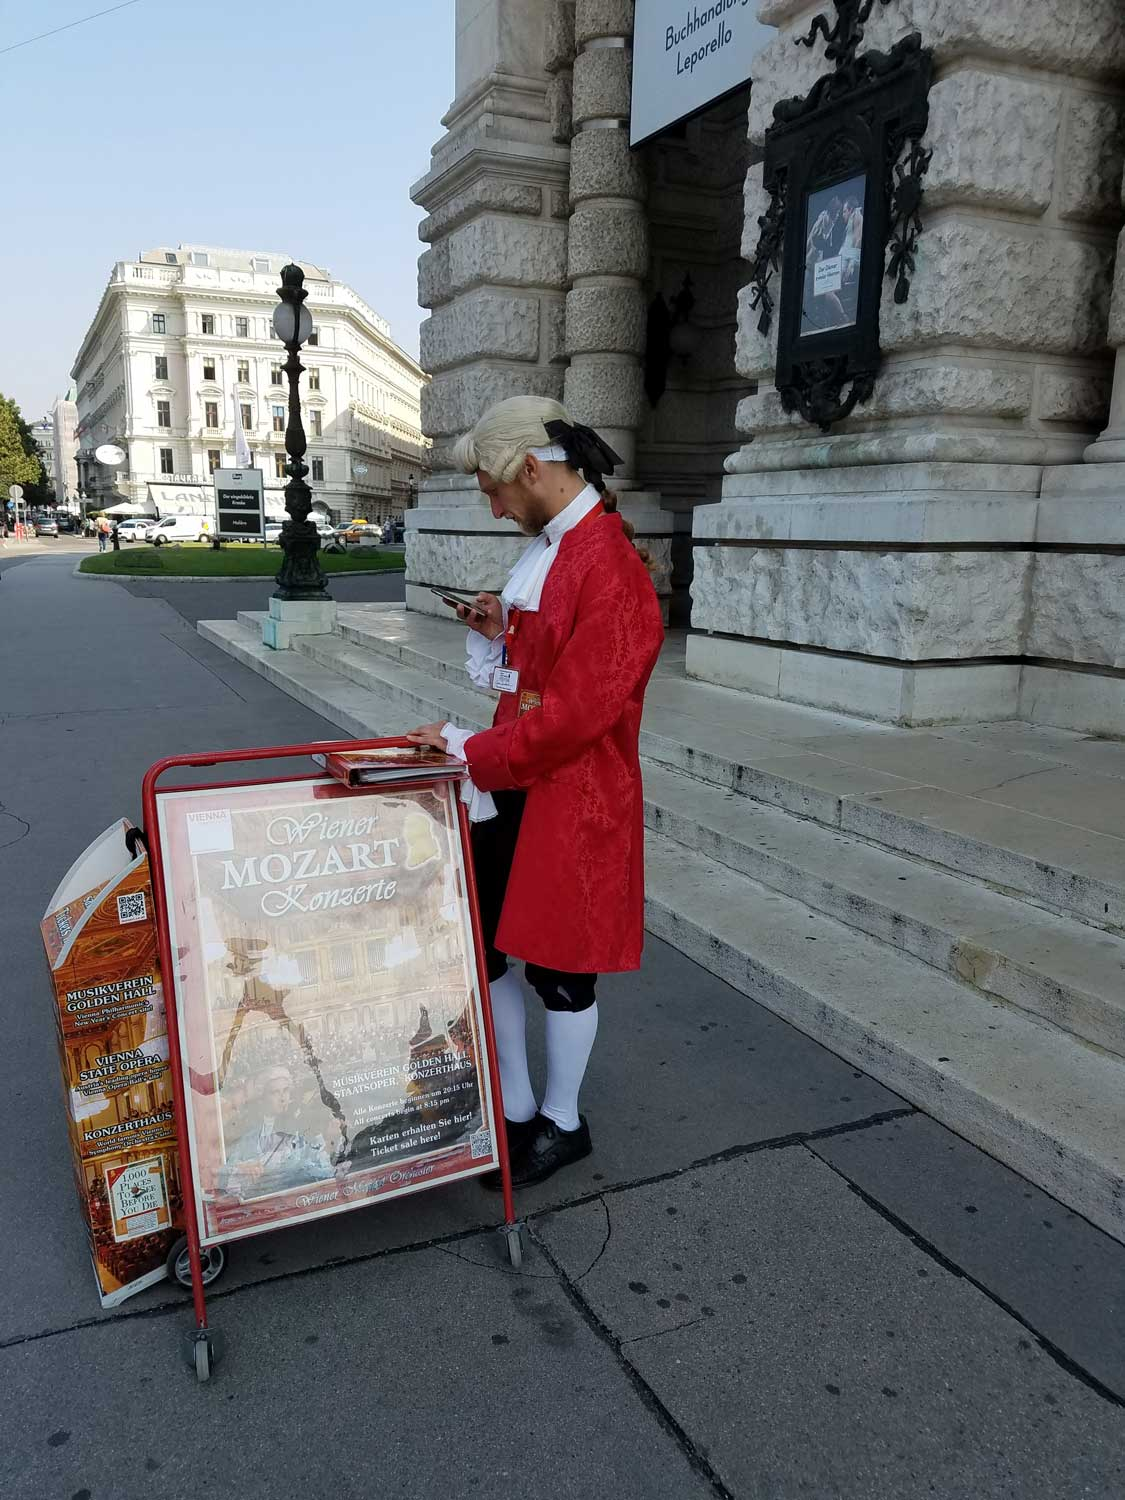 ... And Mozart sending a text message in front of Vienna's many concert halls.